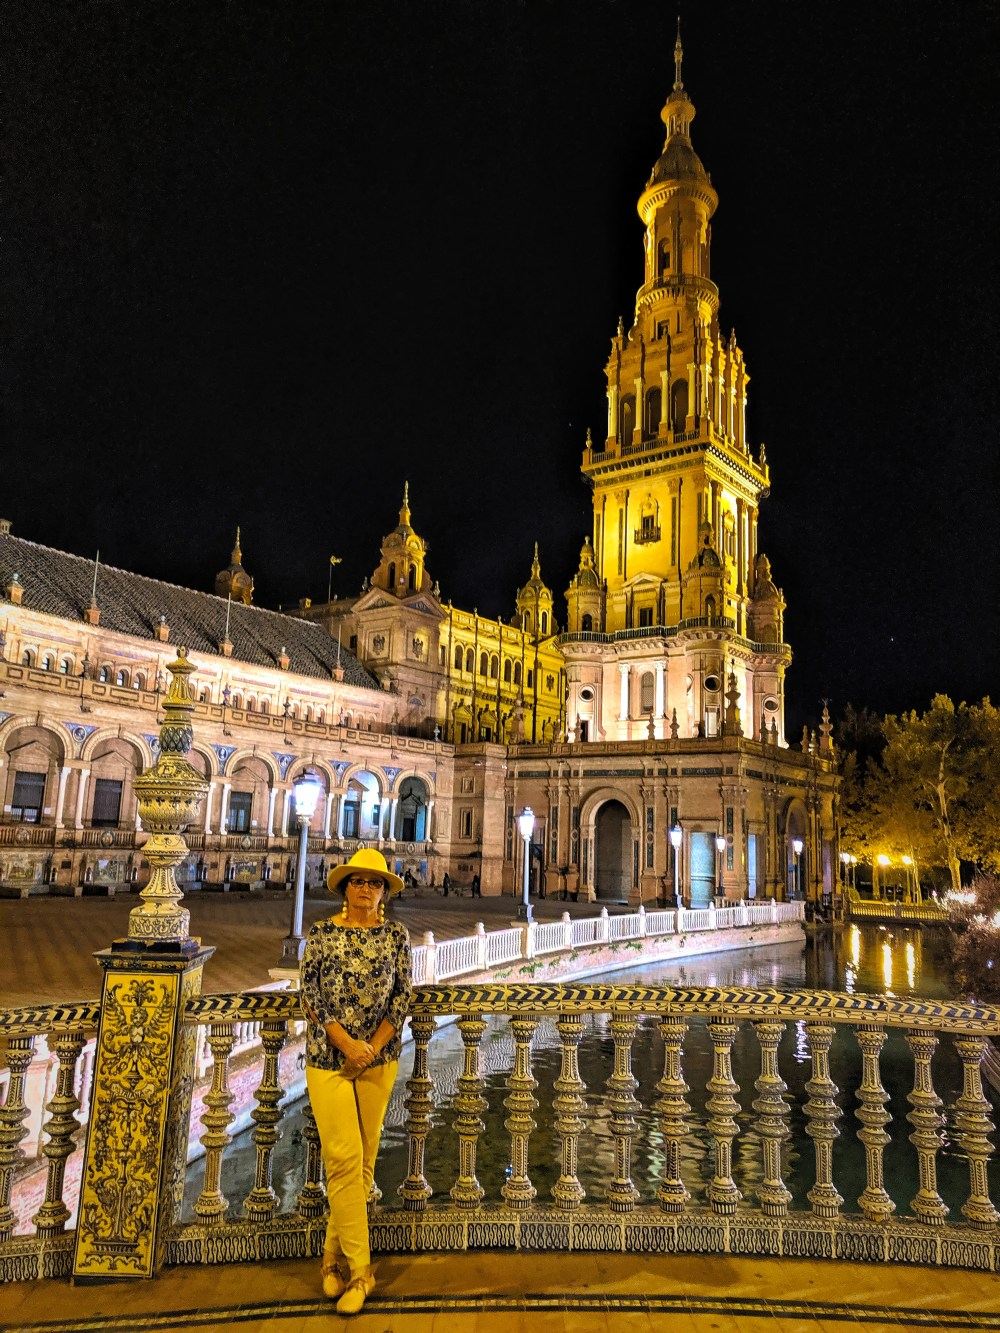 Seville Spain, things to do. Plaza de Espana at night.